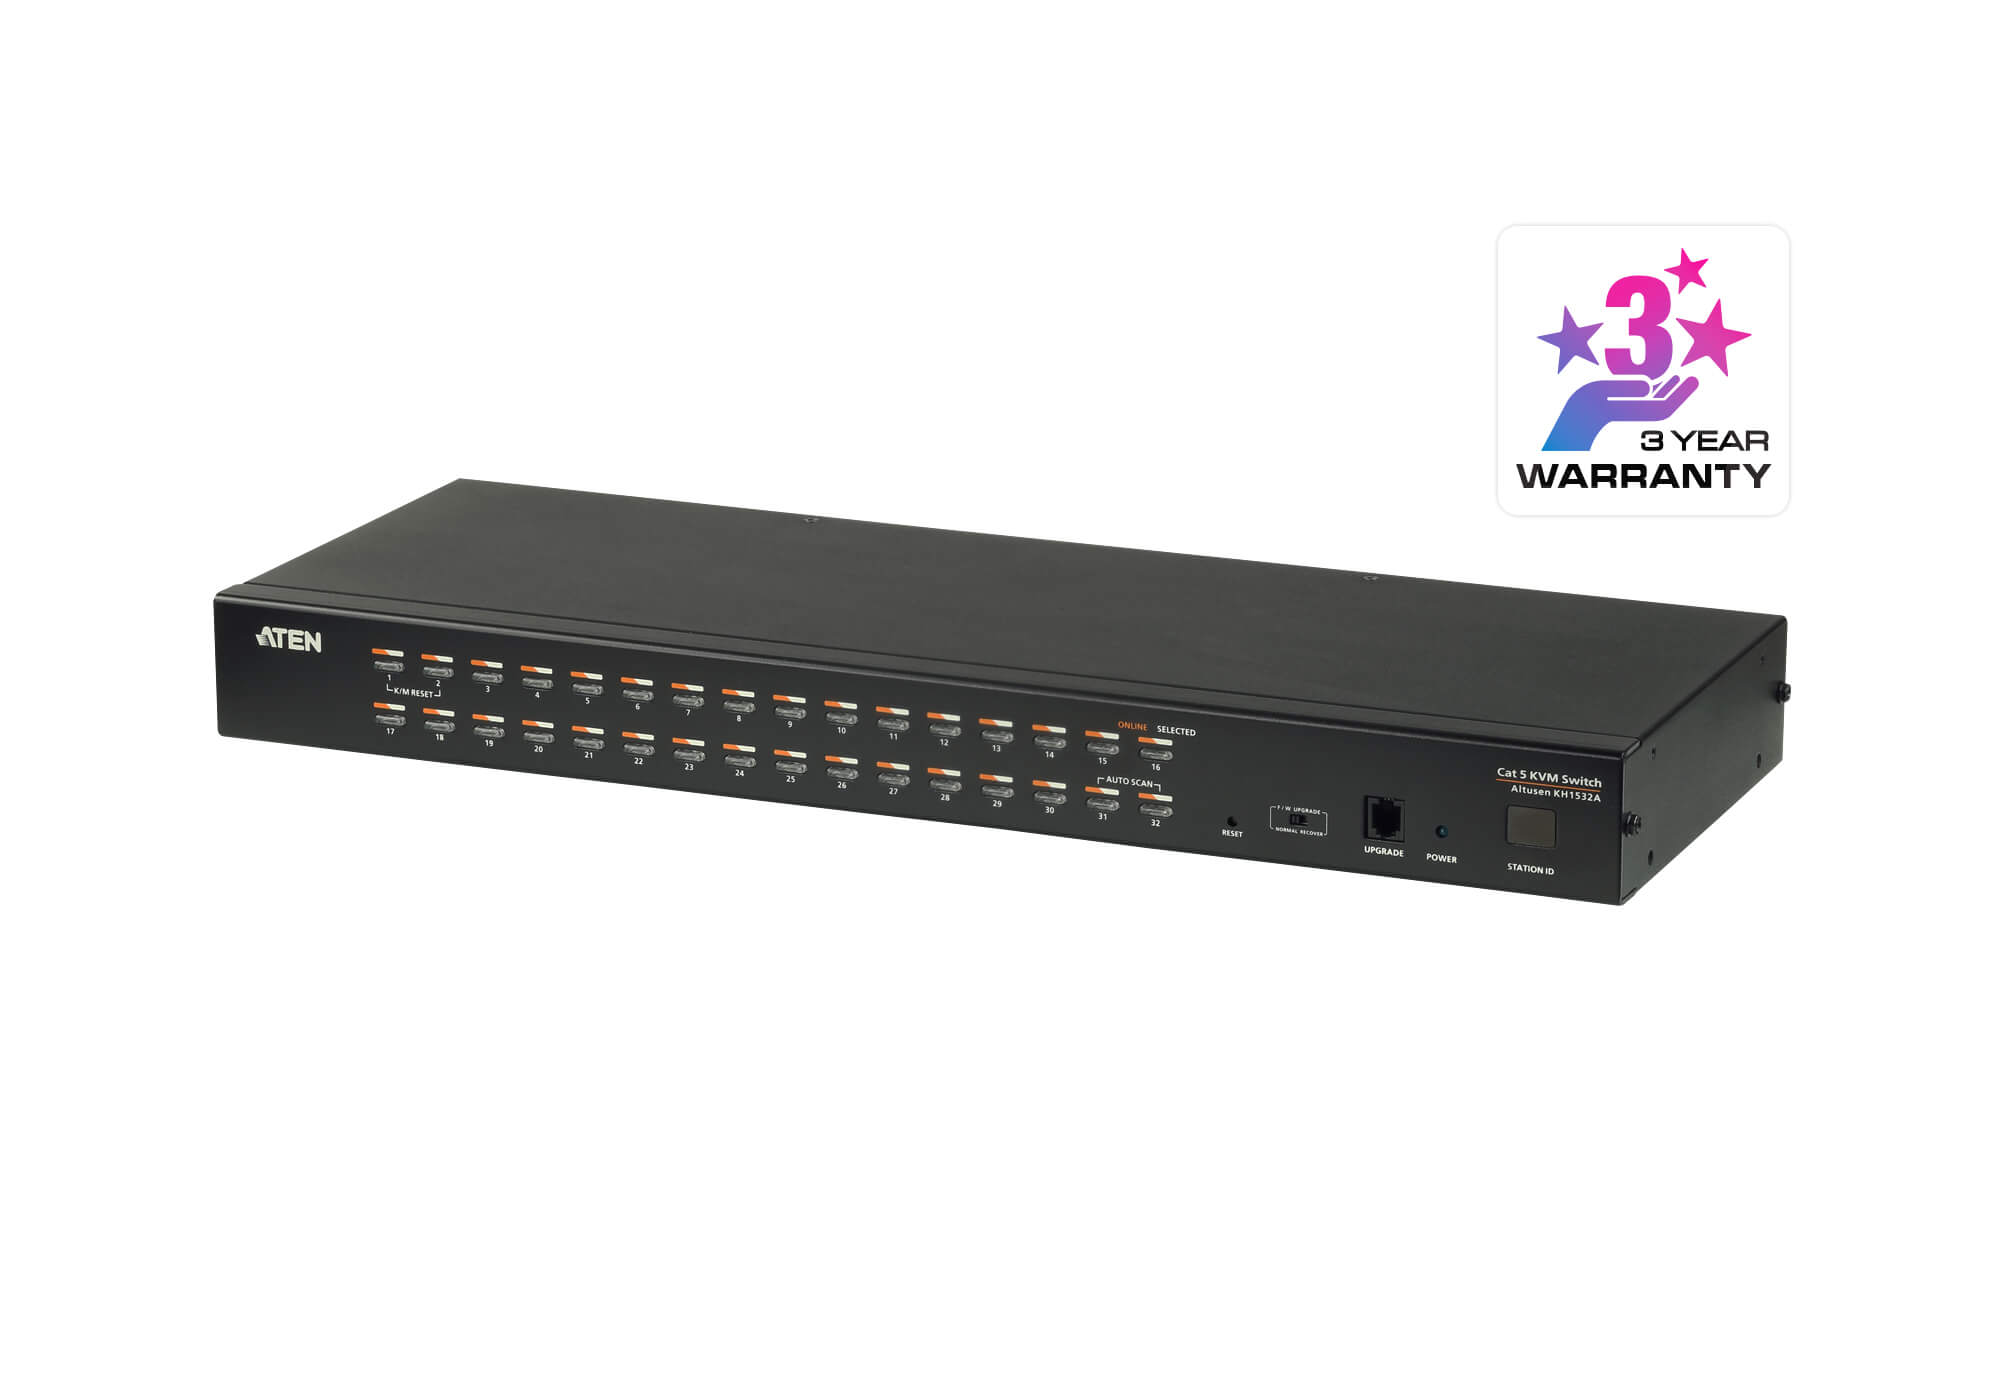 Switch KVM Cat 5 multi-interfaccia (DisplayPort, HDMI, DVI, VGA) a 32 porte